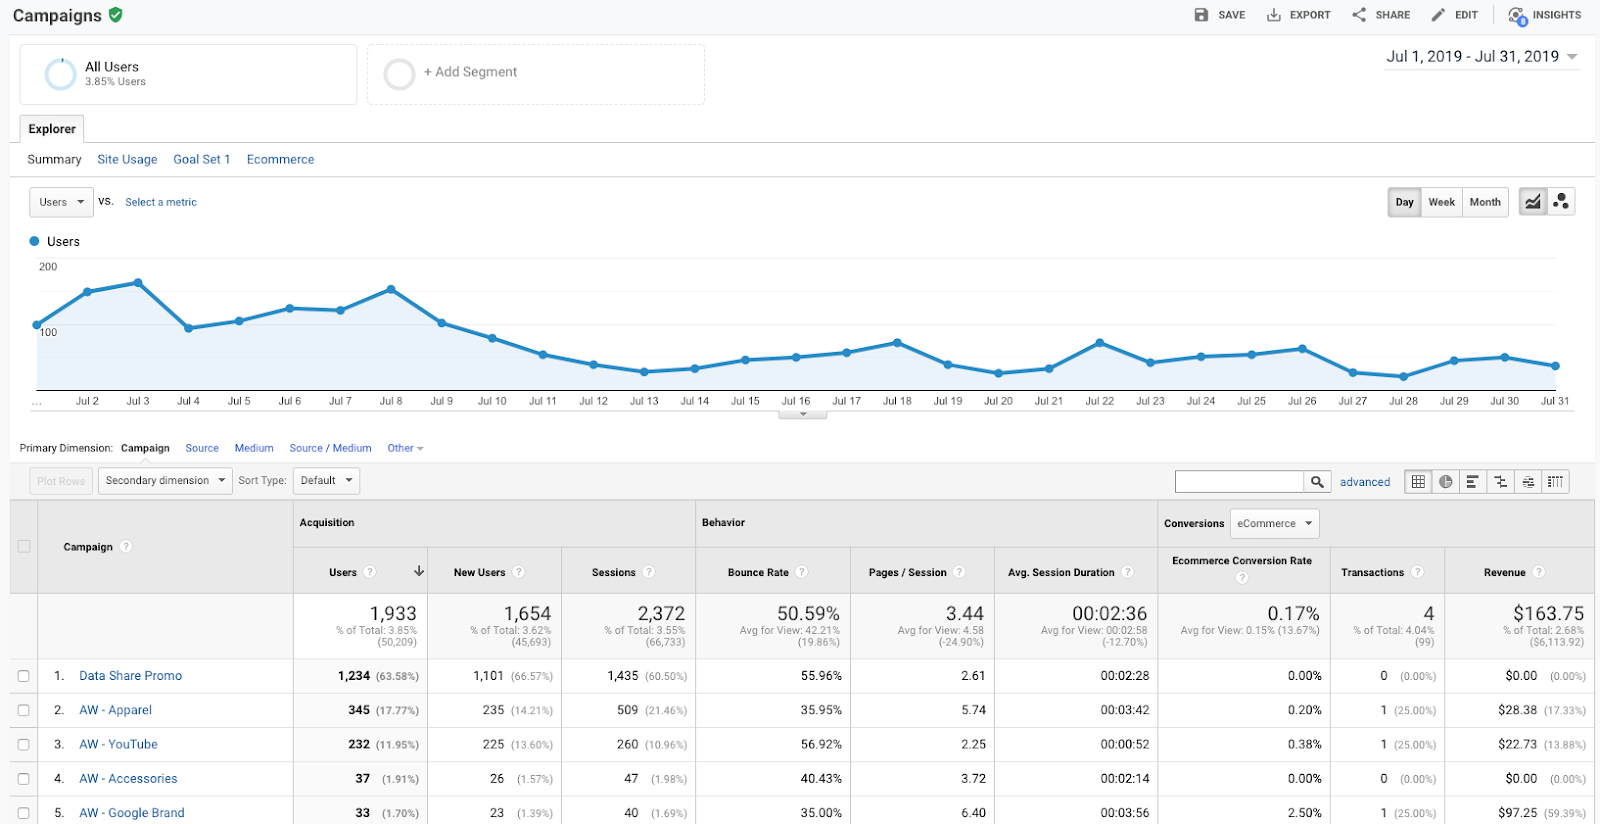 Google Analytics - Campaigns Overview